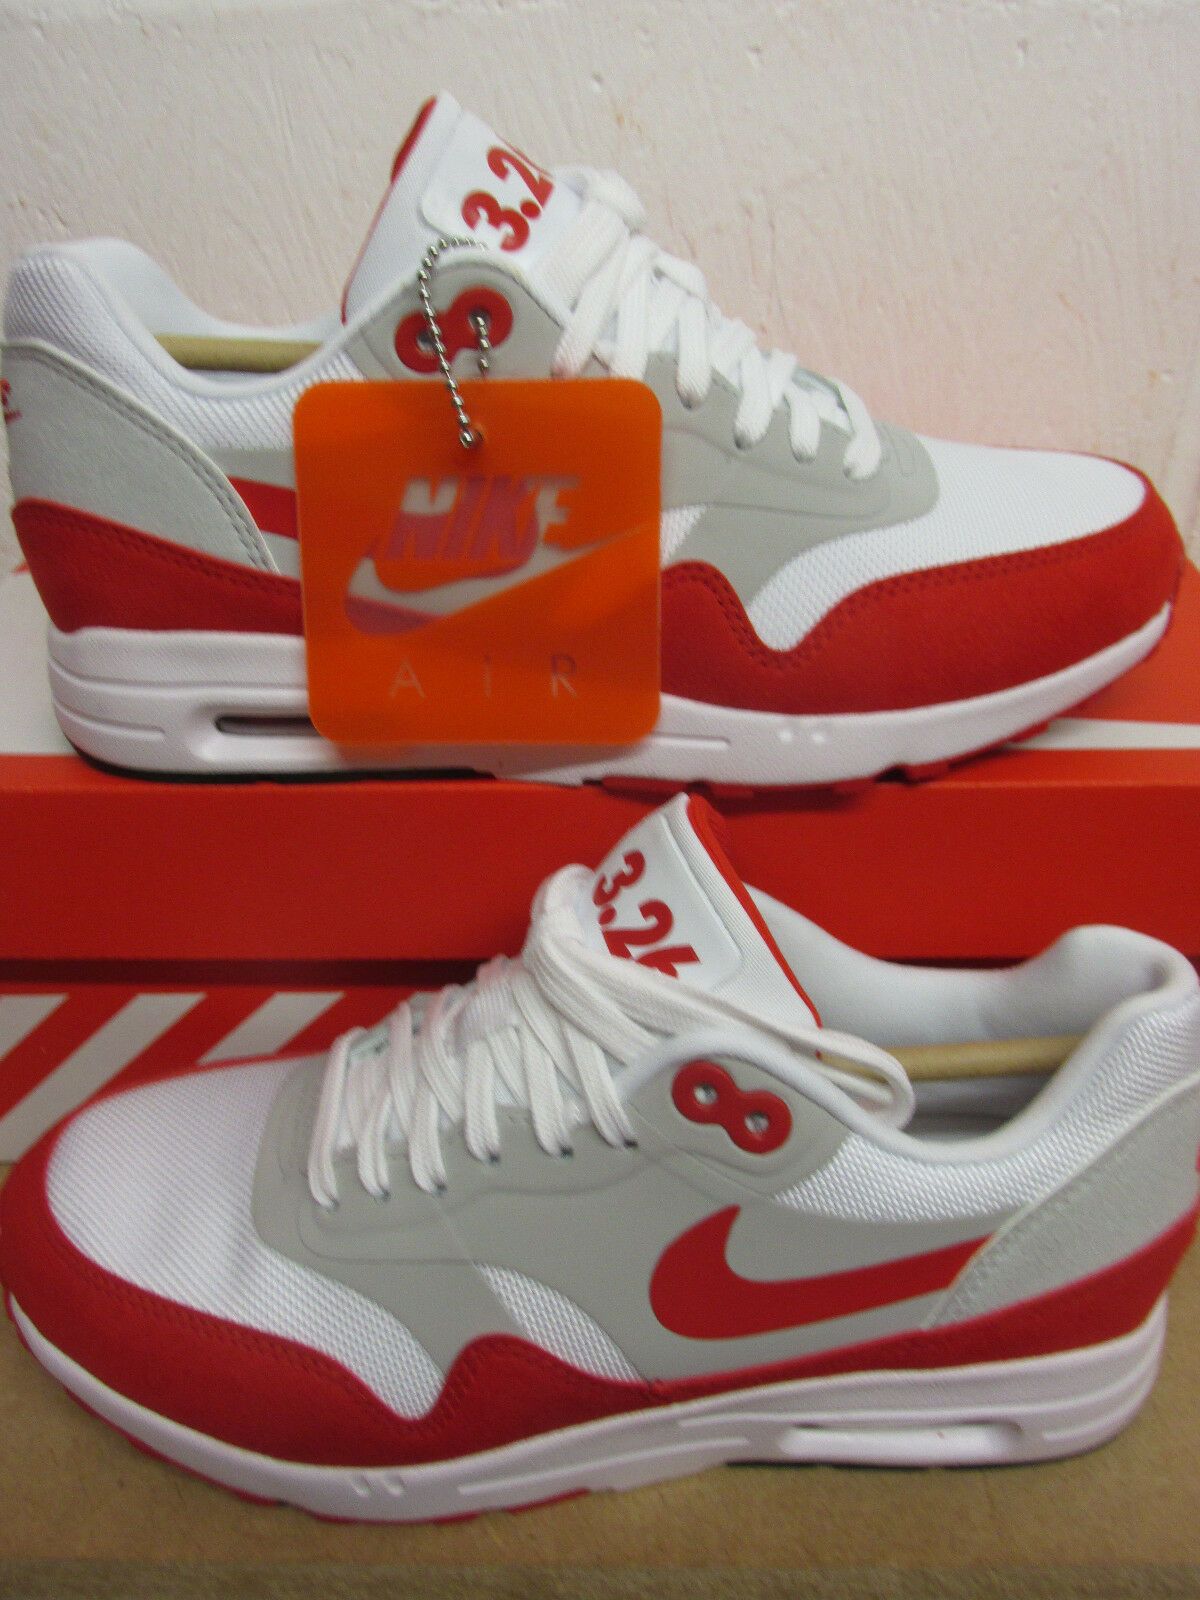 Nike Femme Air Max 1 Ultra 2.0 LE fonctionnement Trainers 908489 101 Sneakers chaussures